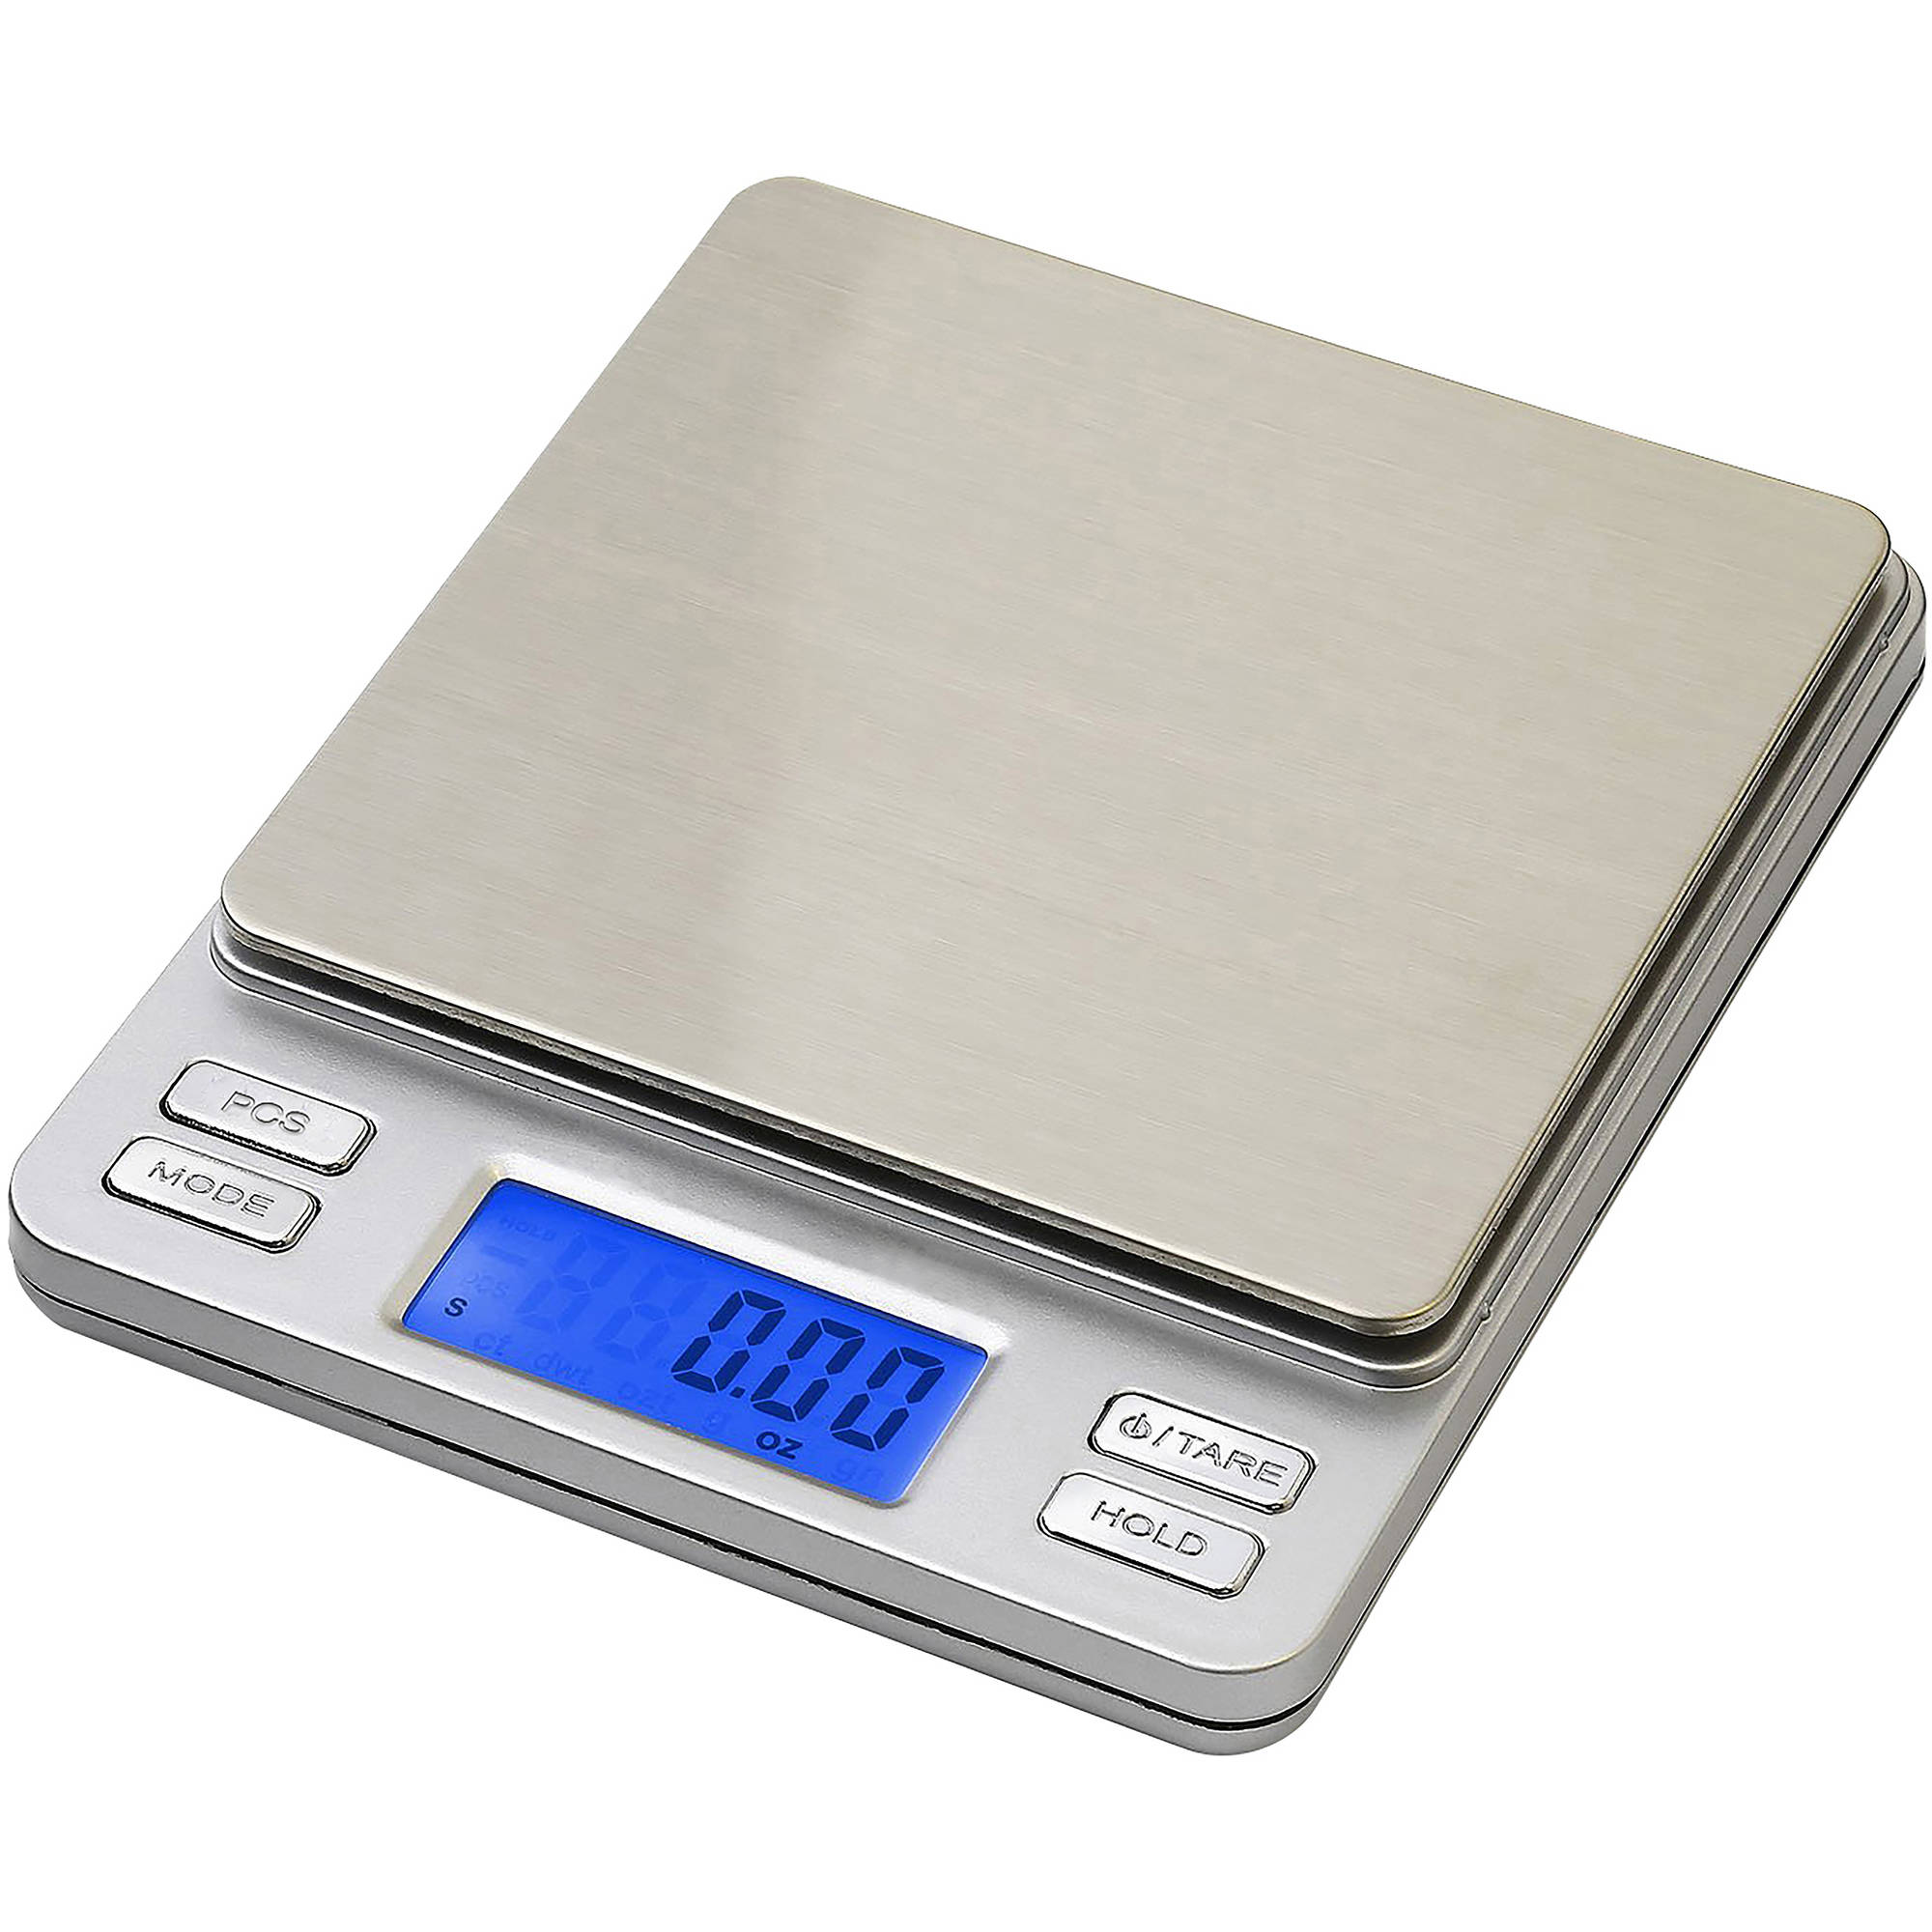 Smart Weigh Digital Pro Pocket Scale with Back-Lit LCD Display, Tare, Hold and PCS Features, 500 x 0.01g, 2 Lids Included, Silver, SW-TOP500-SIL